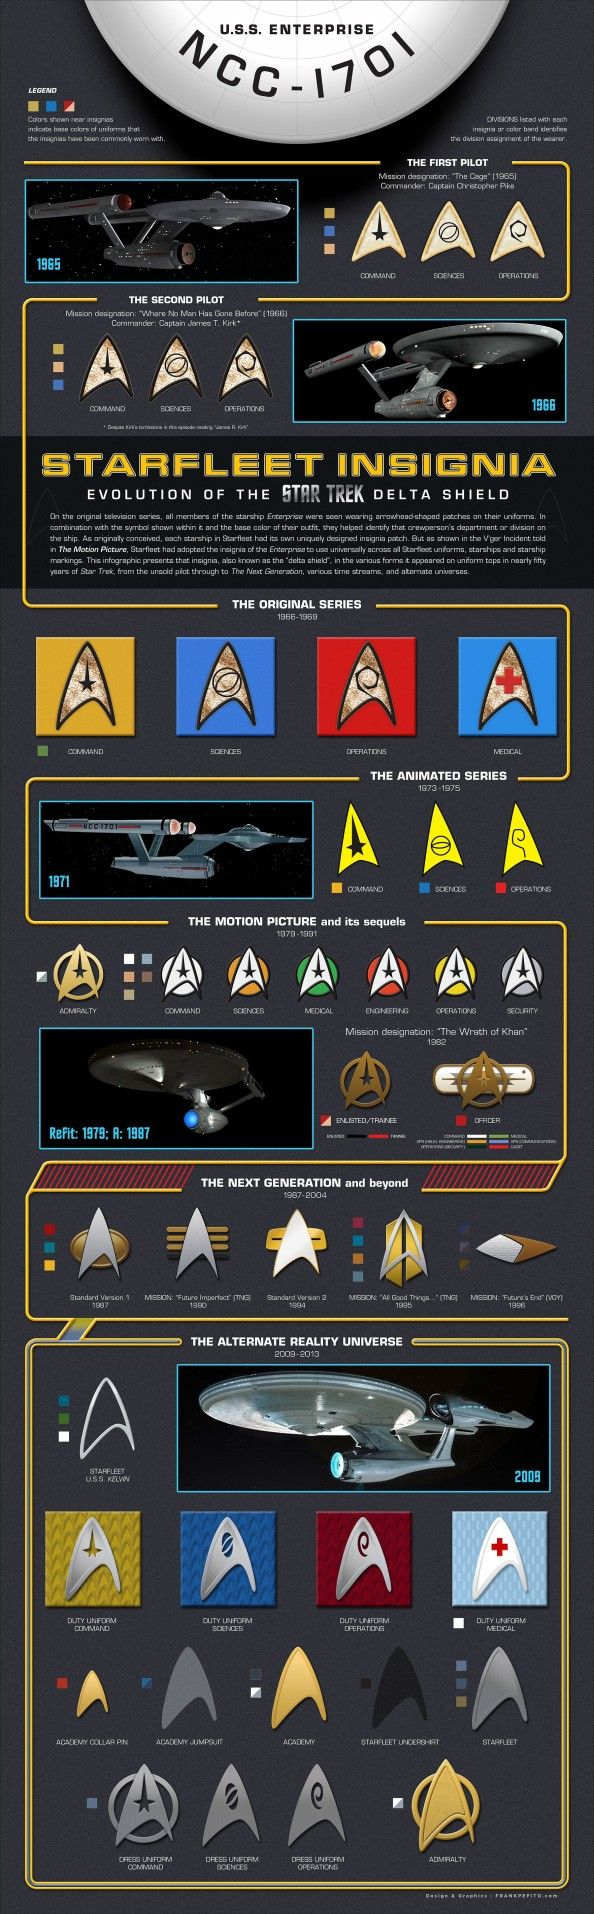 Starfleet Insignia: Evolution of the Star Trek Delta Shield Infographic